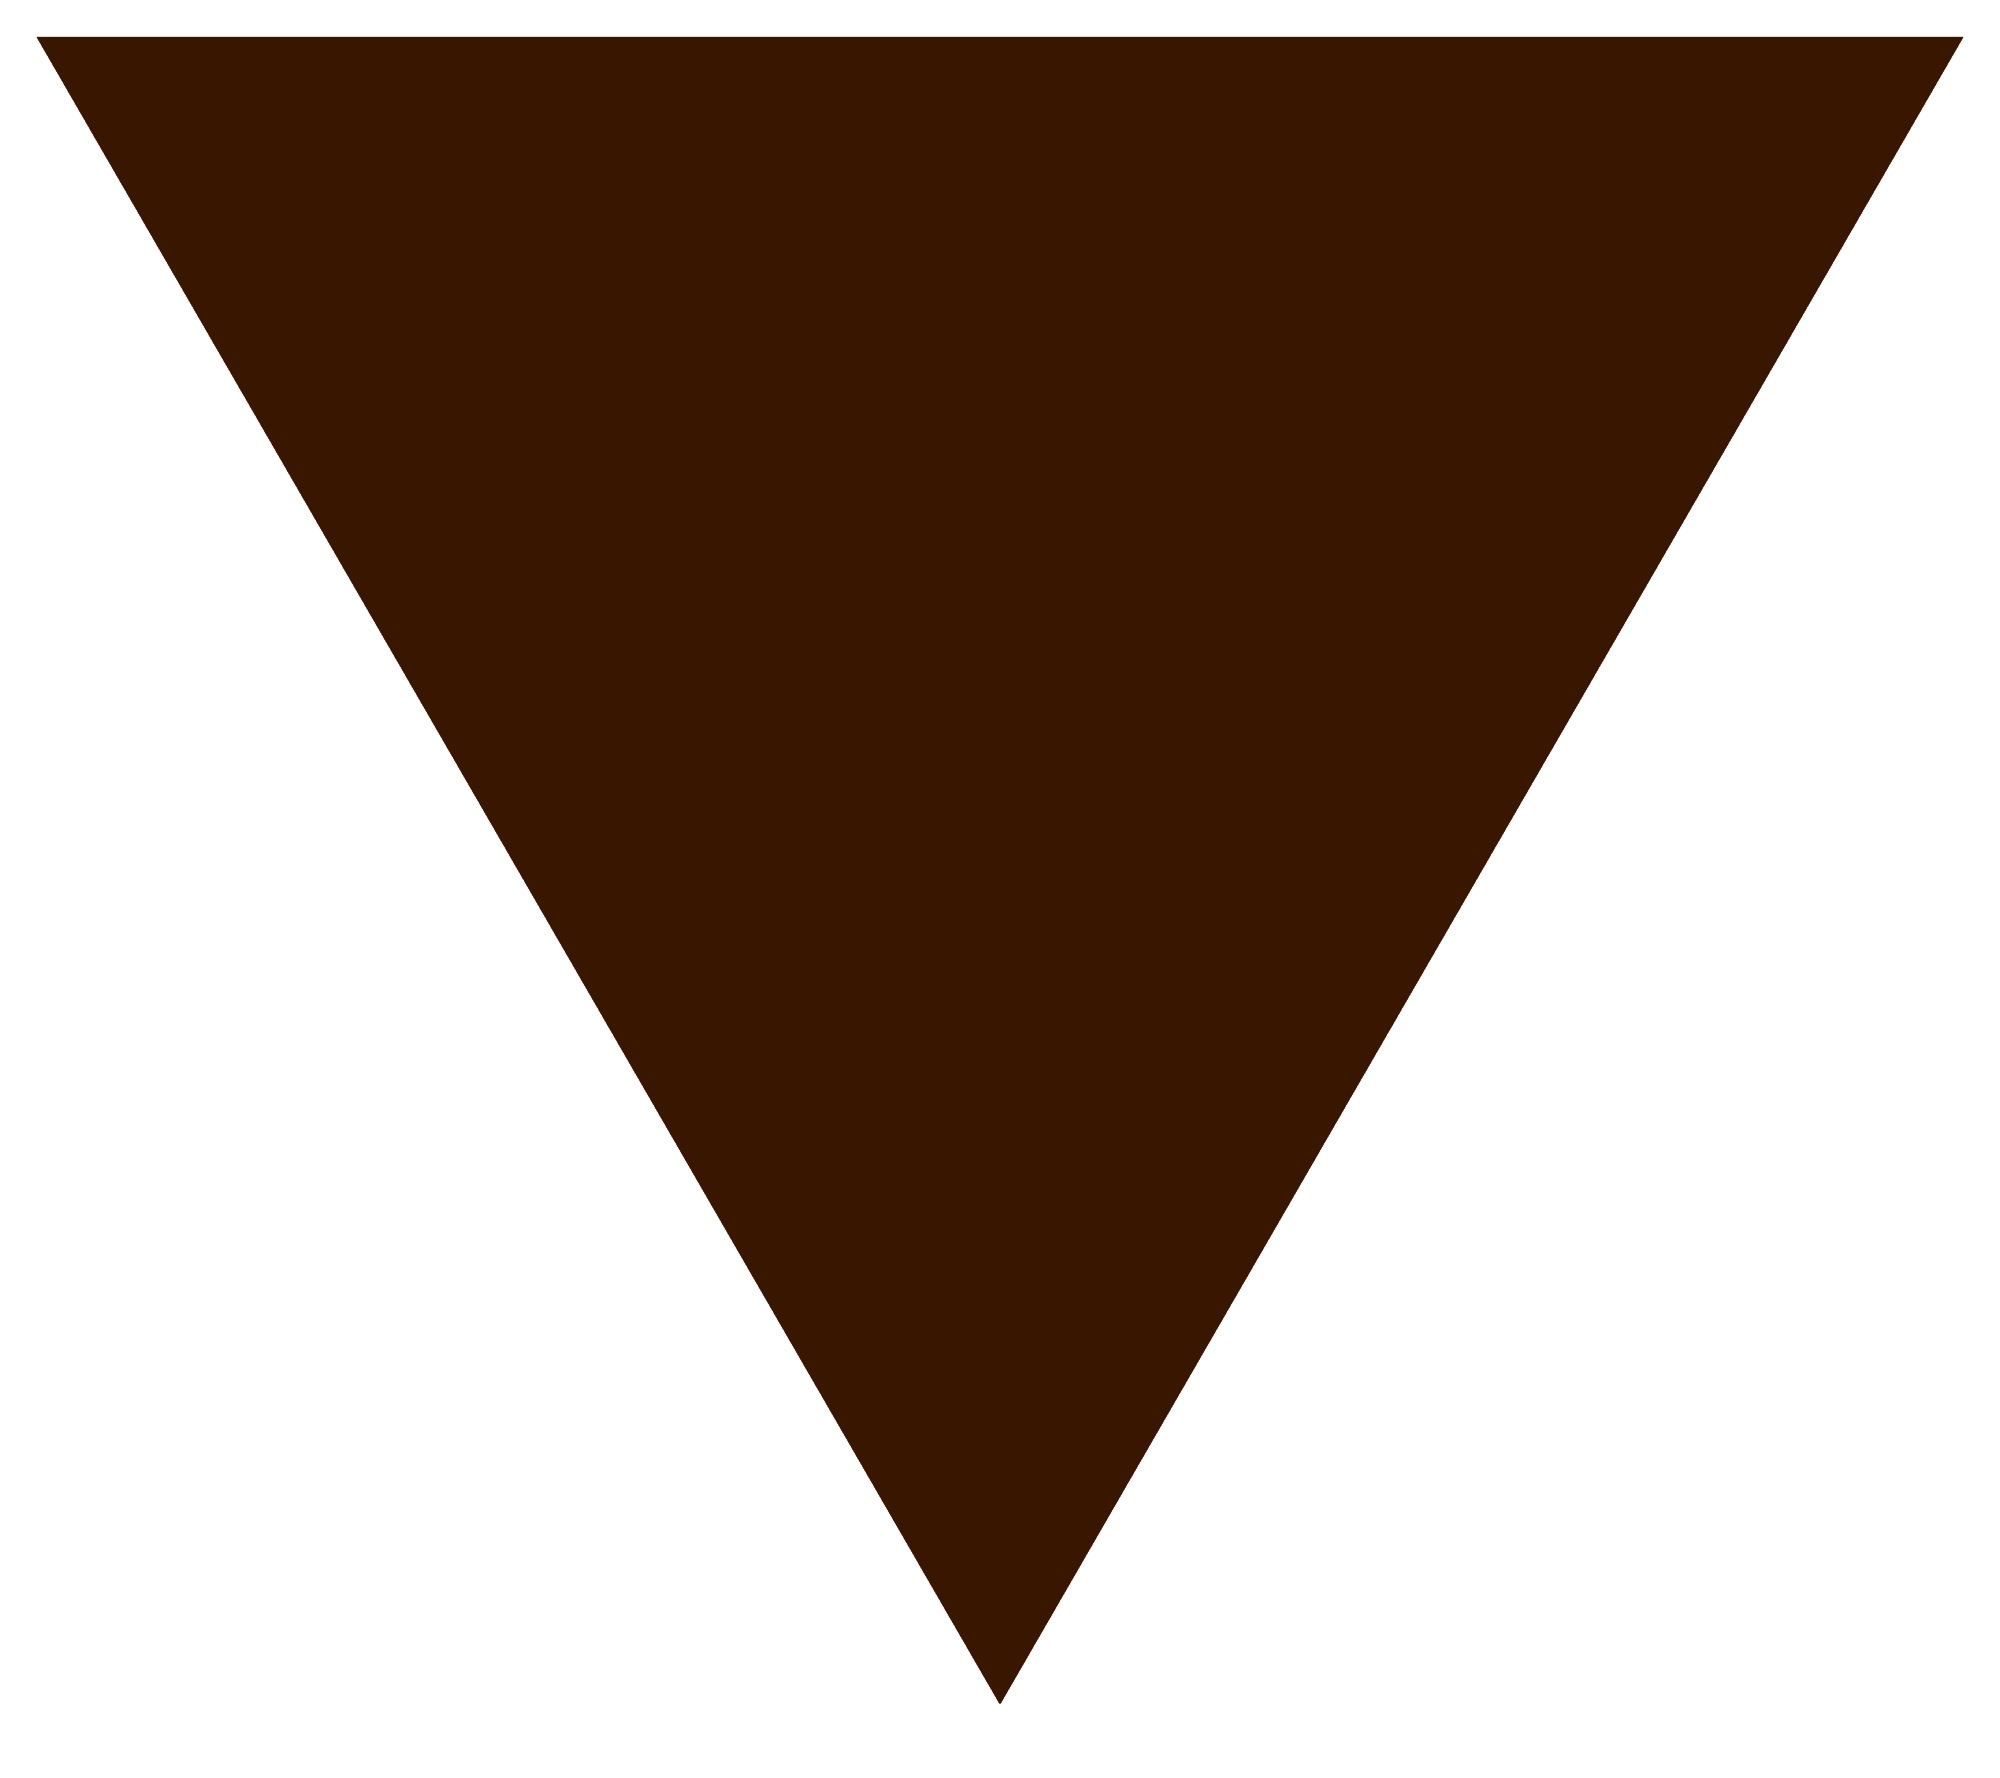 File:Brown triangle svg.jpg